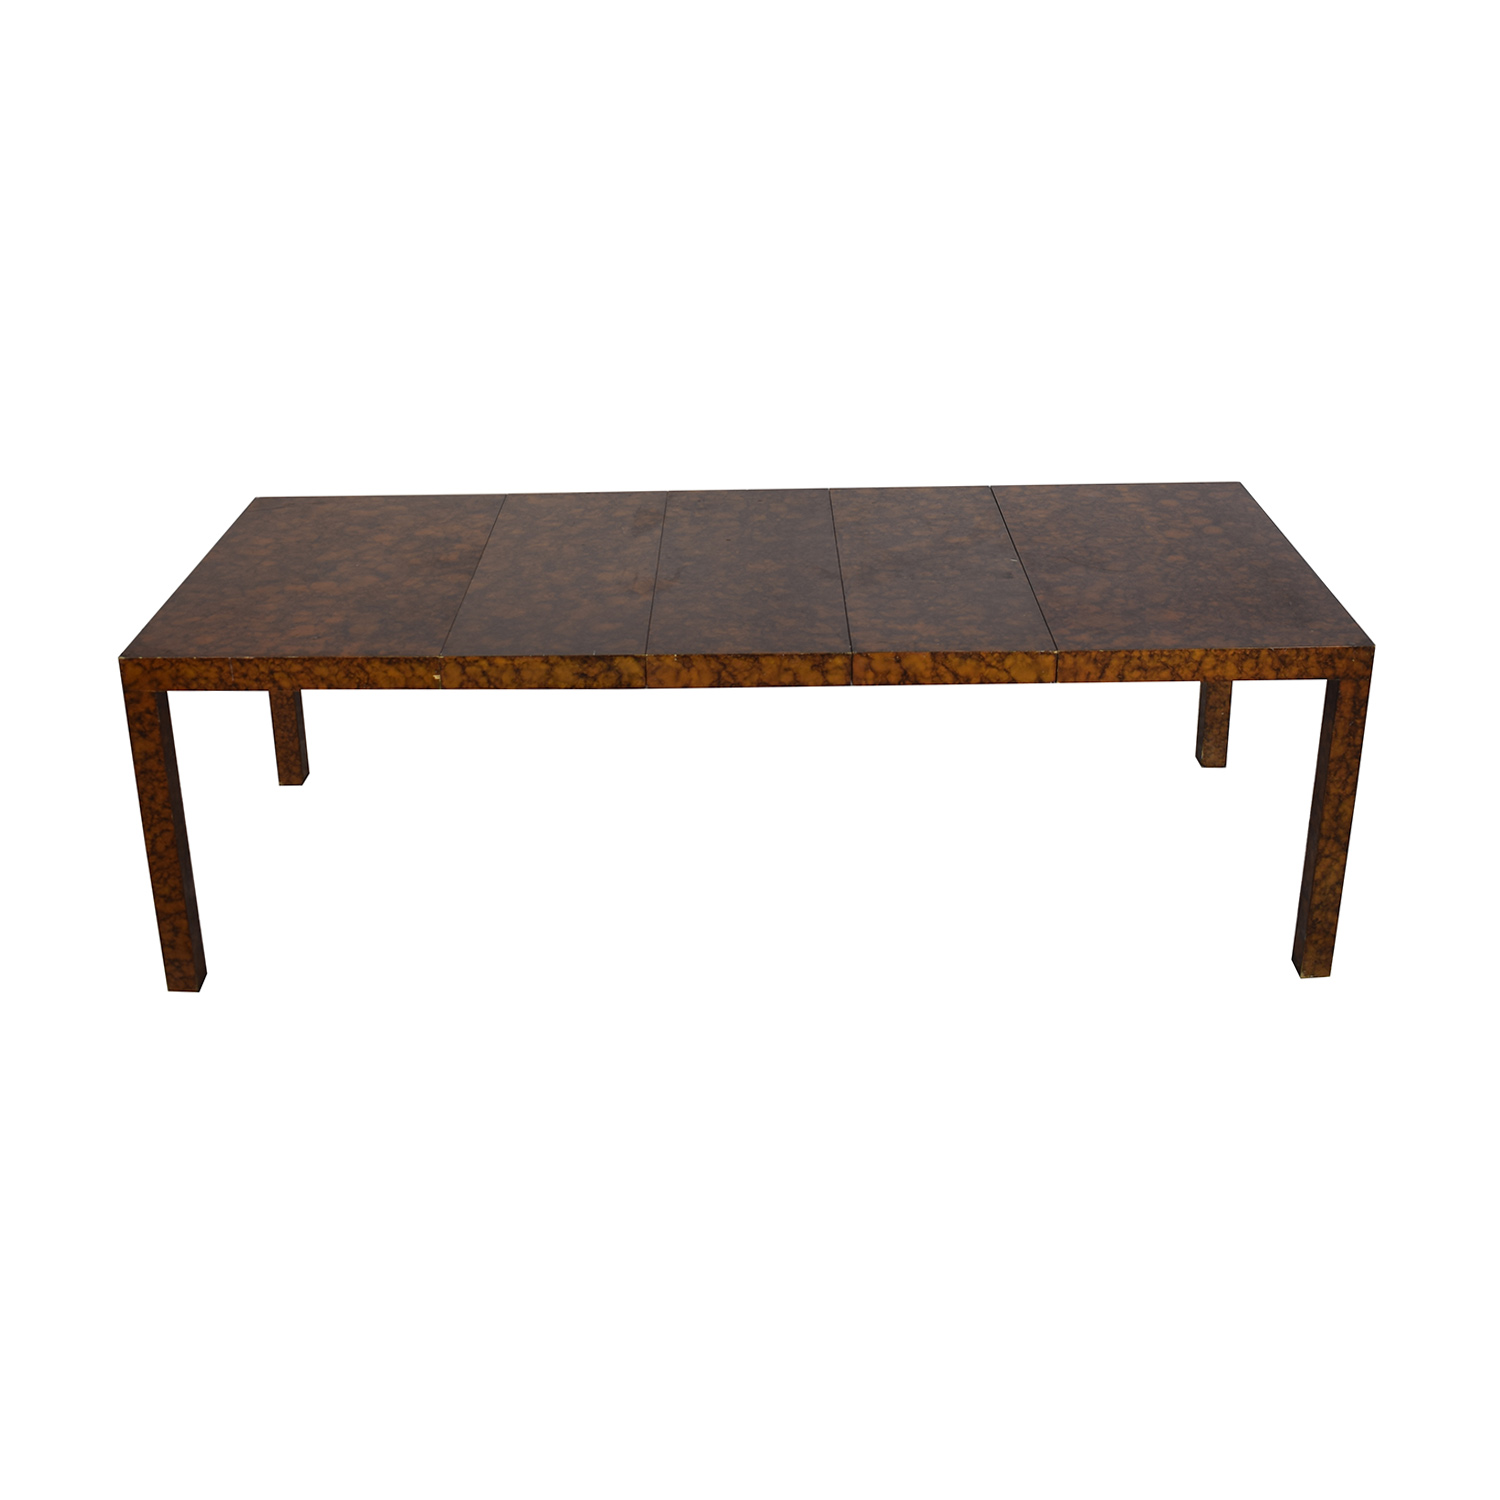 buy Directional Furniture Directional Furniture Milo Baughman Burl Parsons Dining Table online